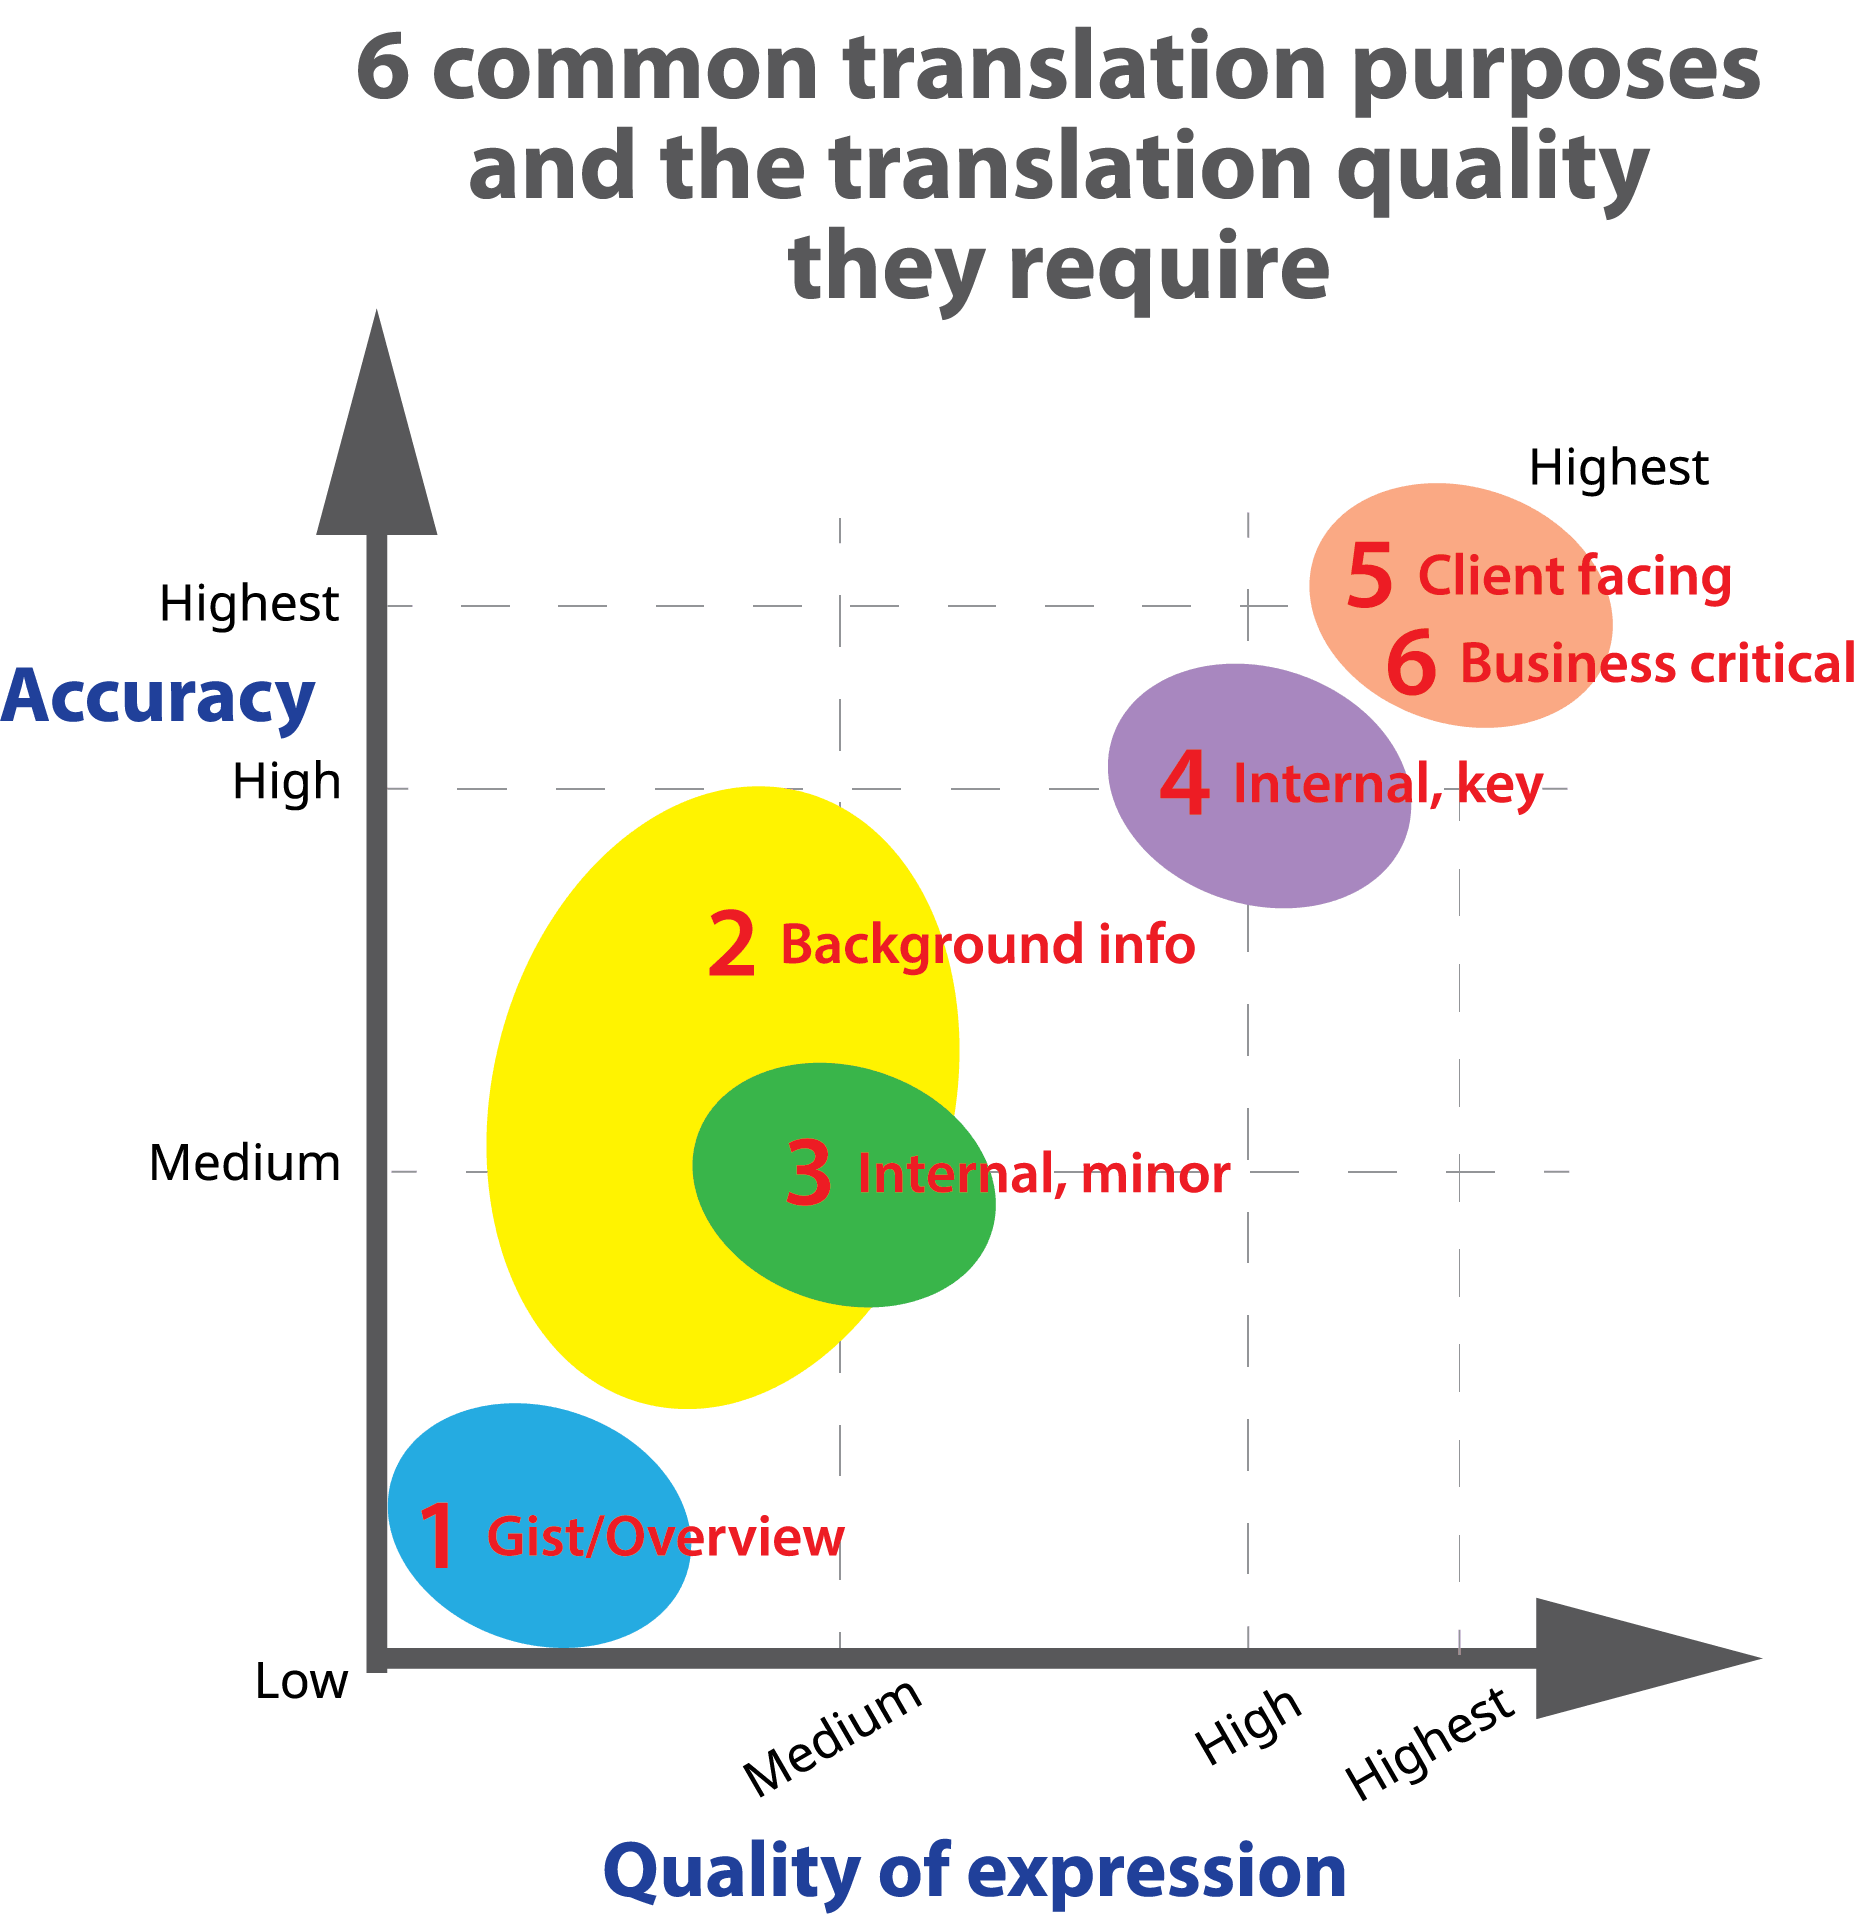 hight resolution of summary of the translation quality the 6 main translation purposes require